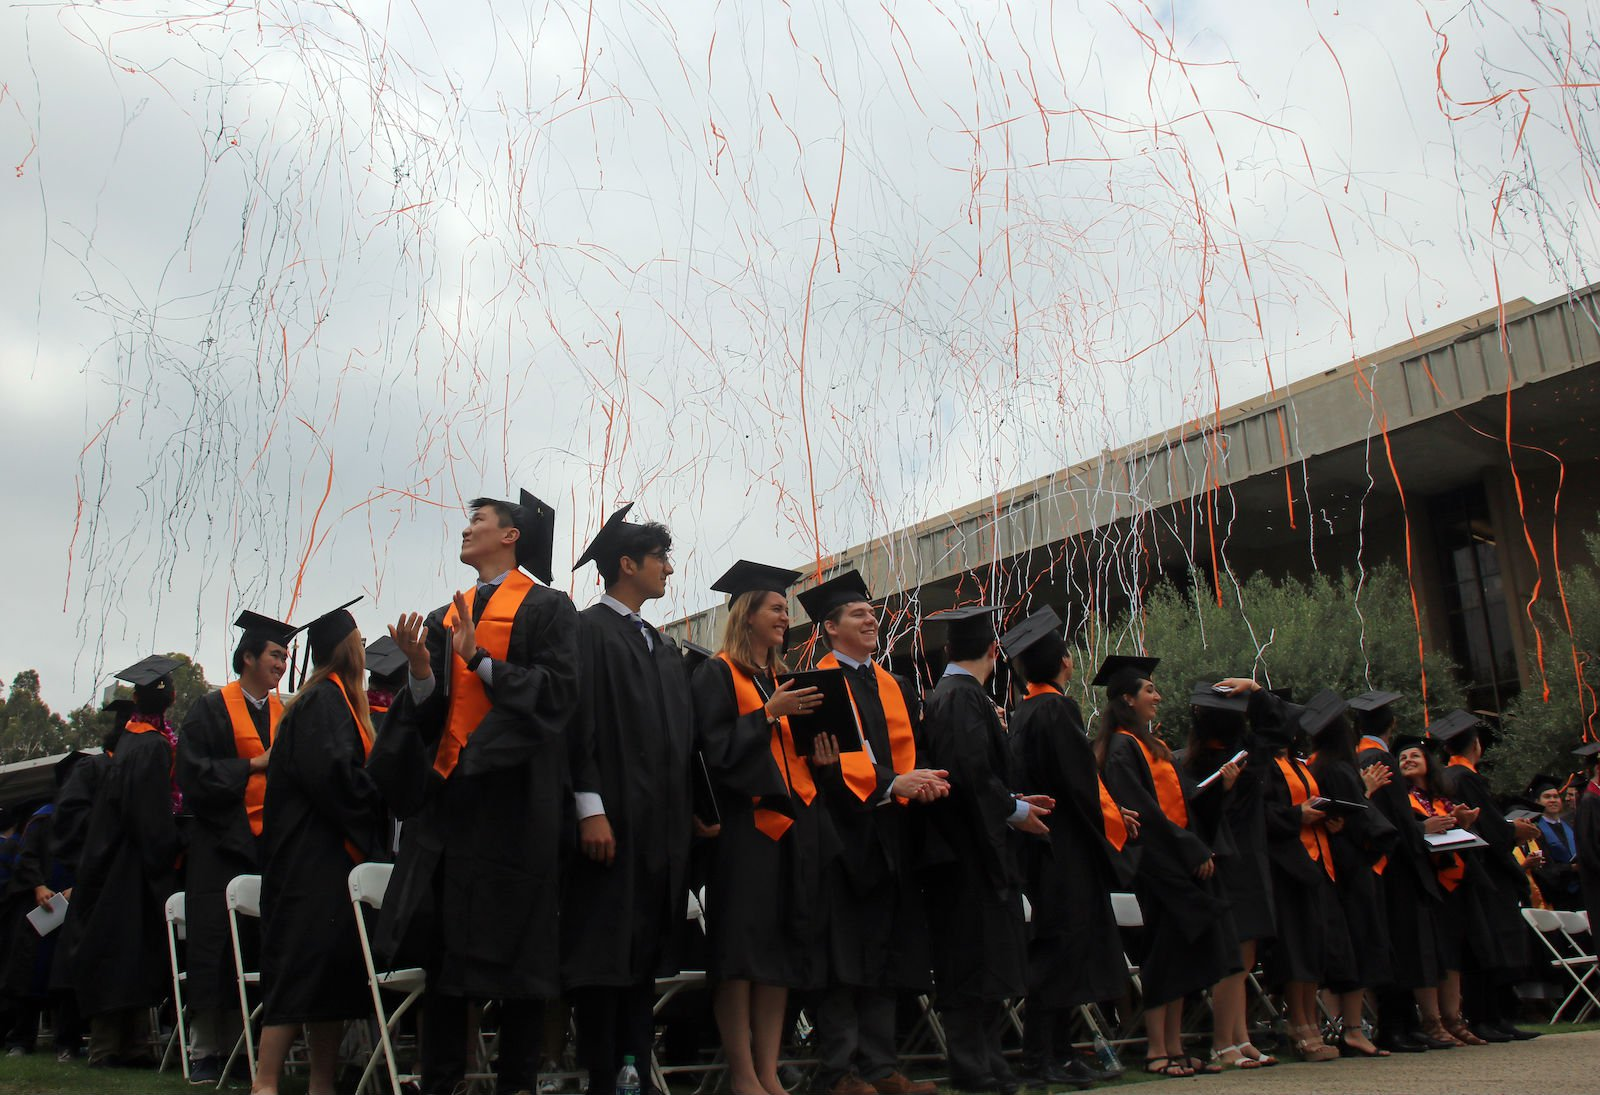 students at Commencement with confetti